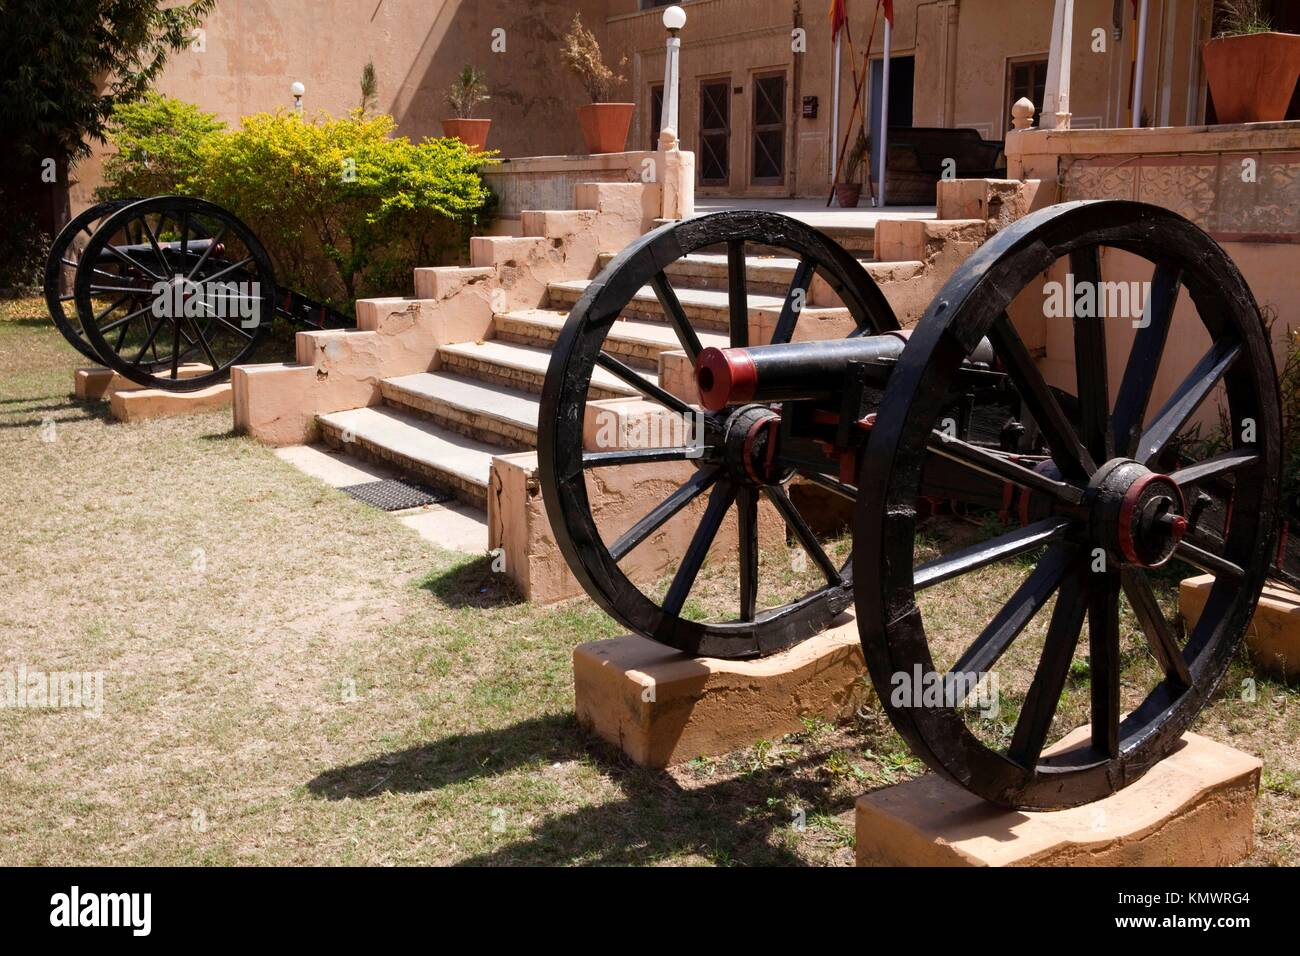 dundlod fort in rajasthan state in india - Stock Image